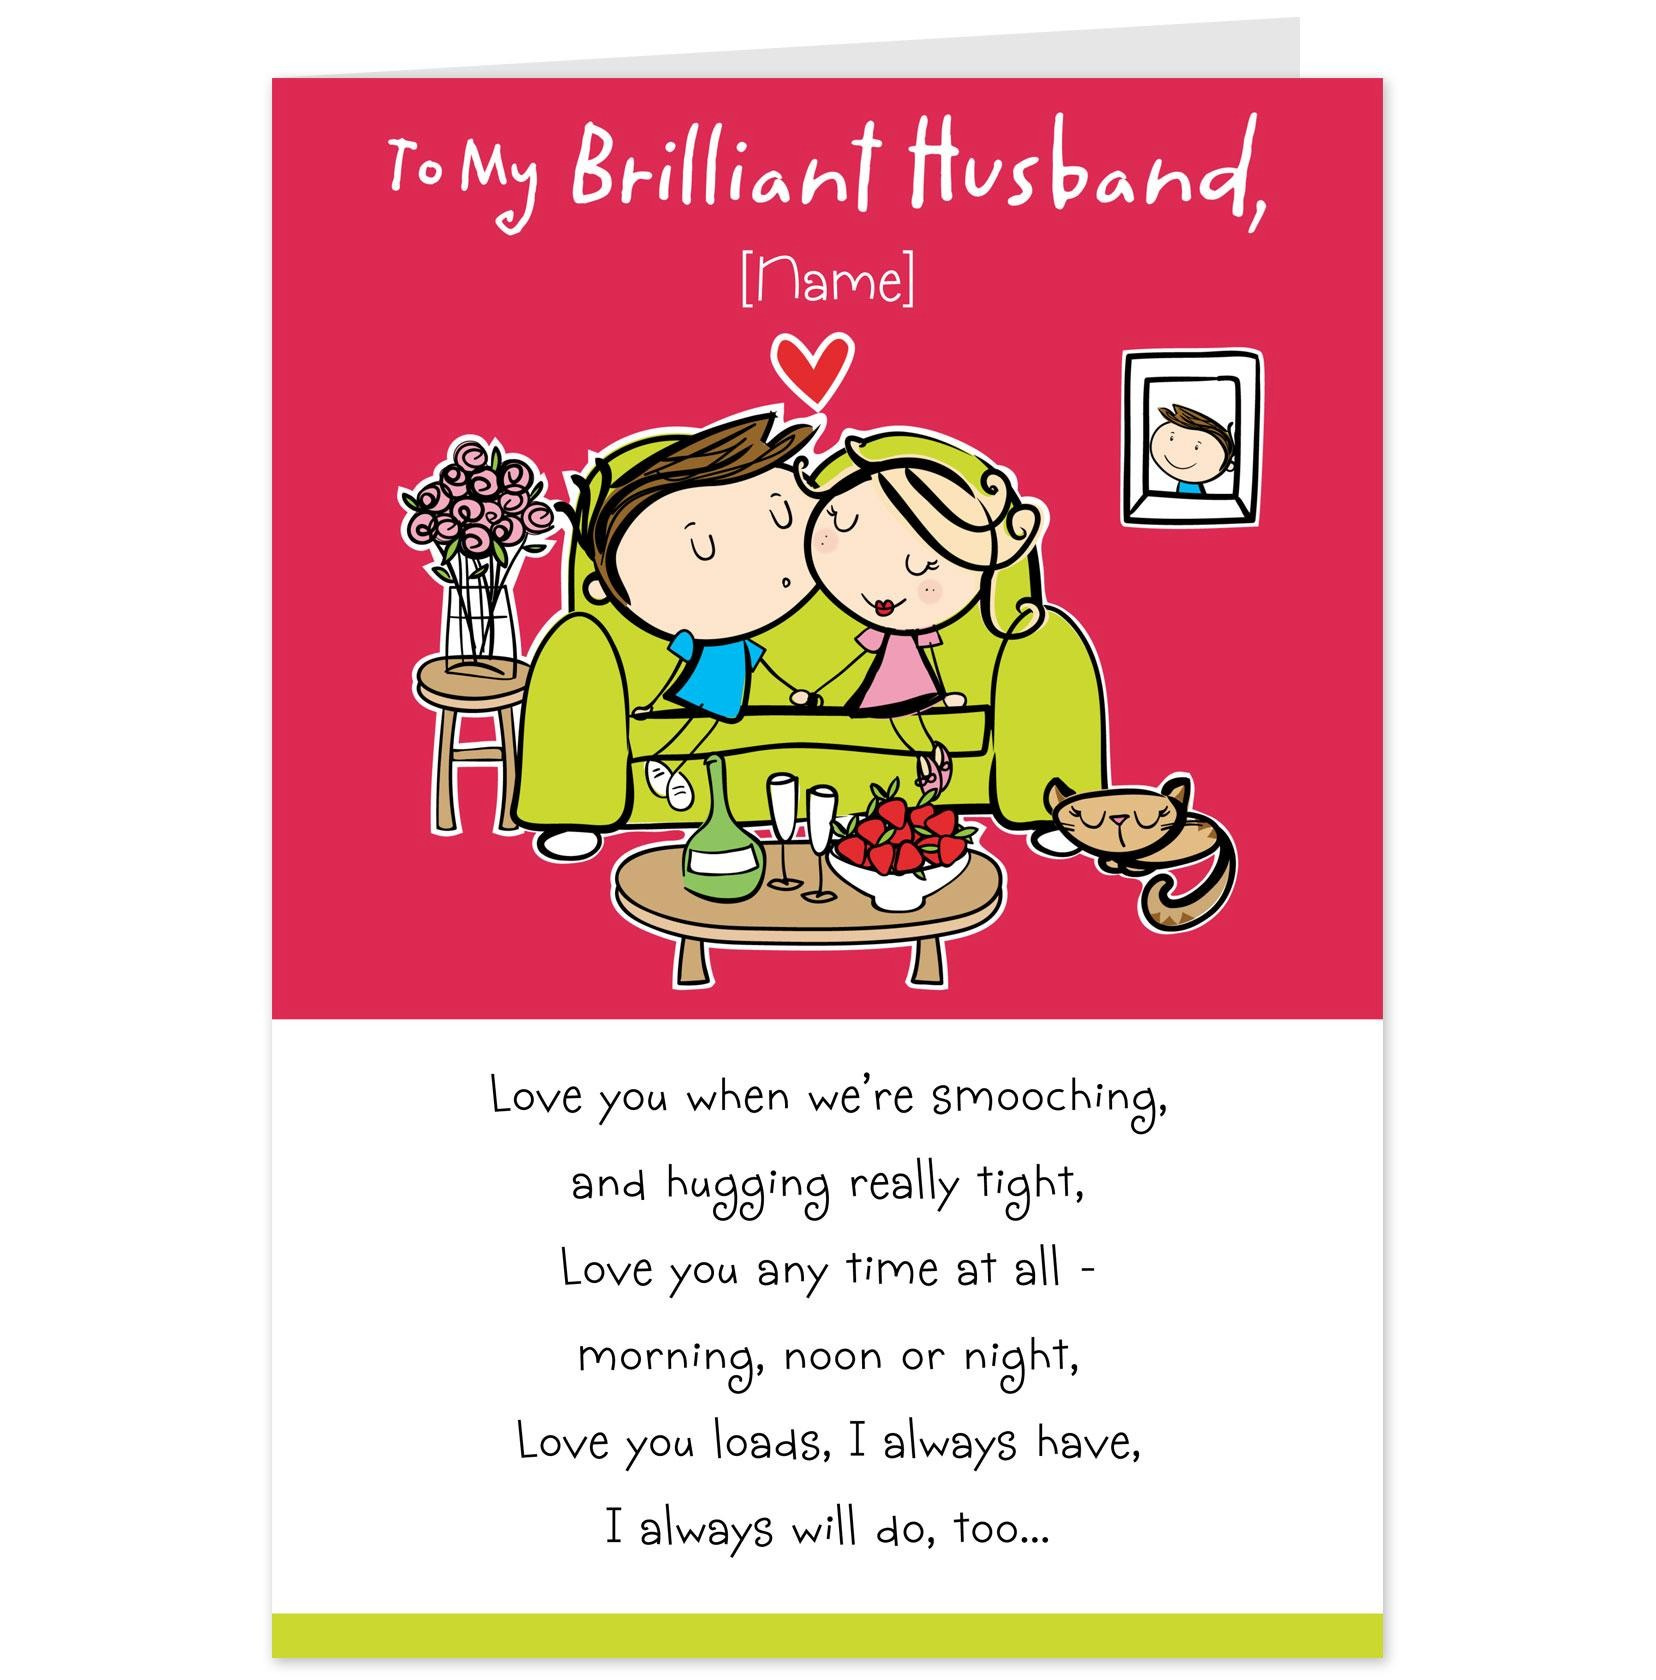 cool birthday message for husband ; funny-husband-birthday-wishes-lovely-birthday-card-some-stunning-funny-husband-birthday-cards-photograph-of-funny-husband-birthday-wishes